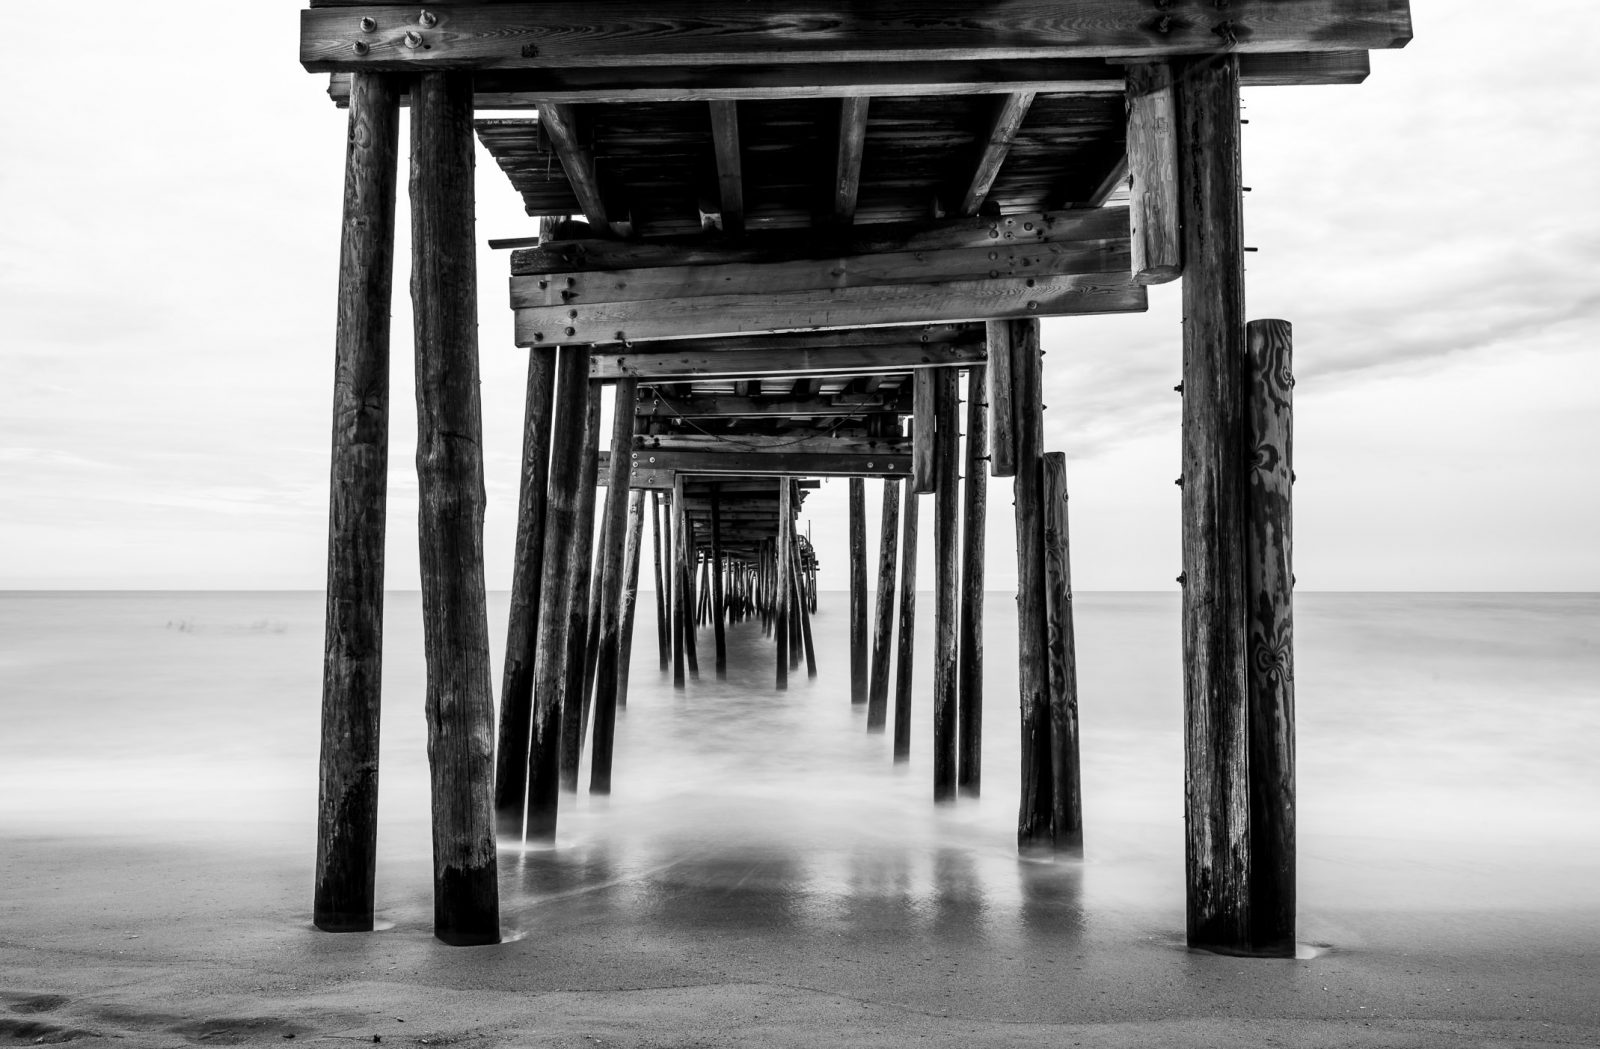 A Cloudy Day in Hatteras National Seashore